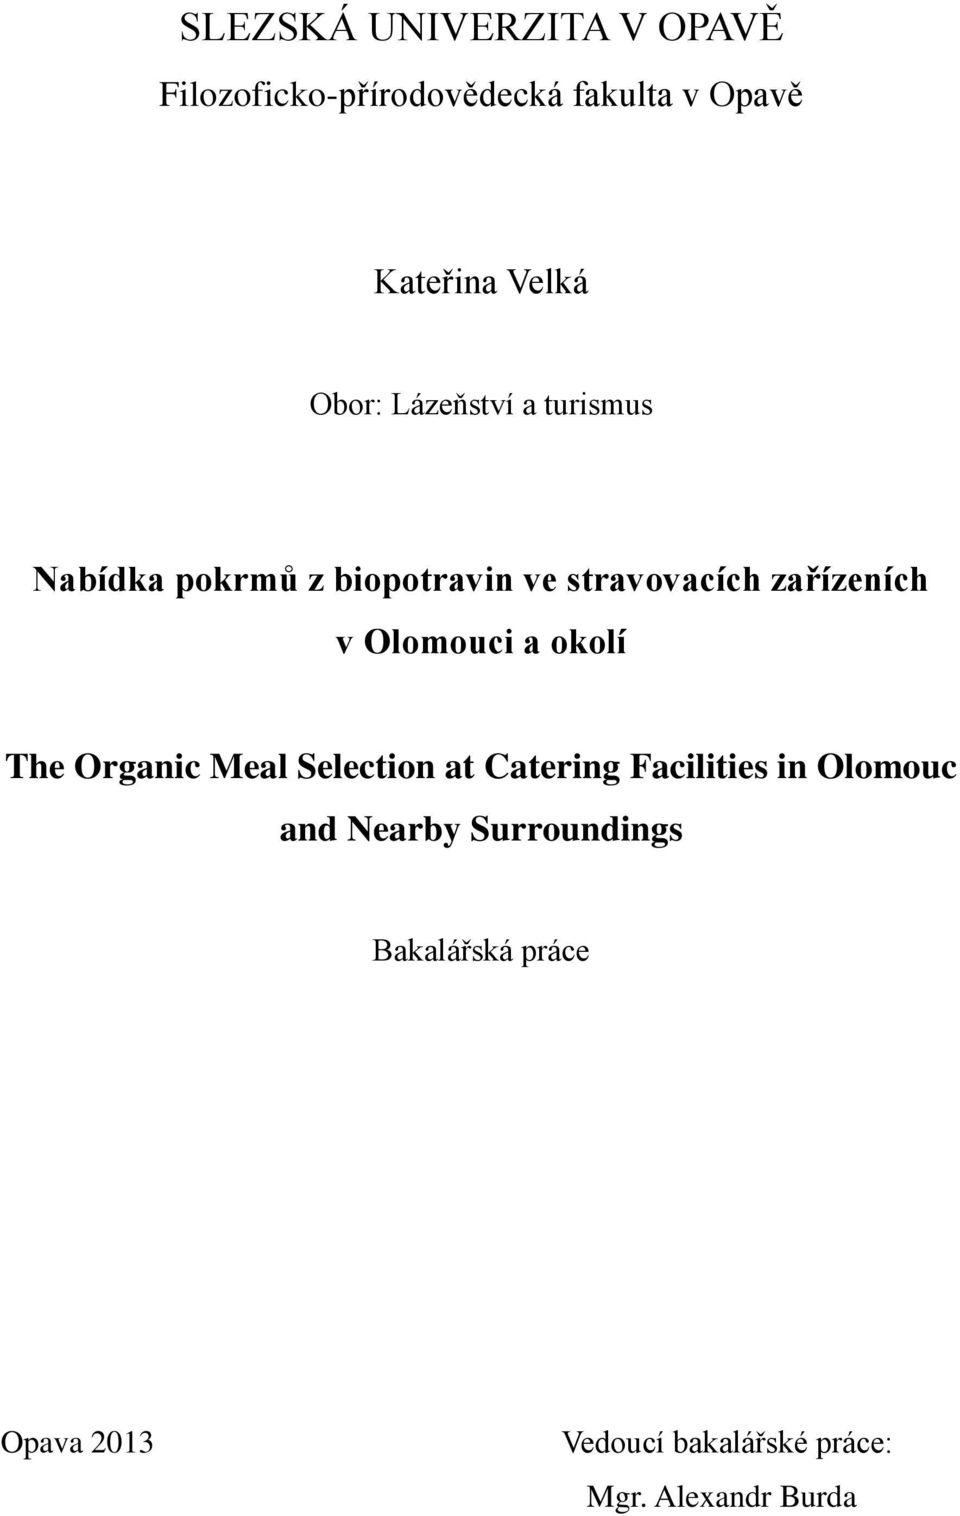 Olomouci a okolí The Organic Meal Selection at Catering Facilities in Olomouc and